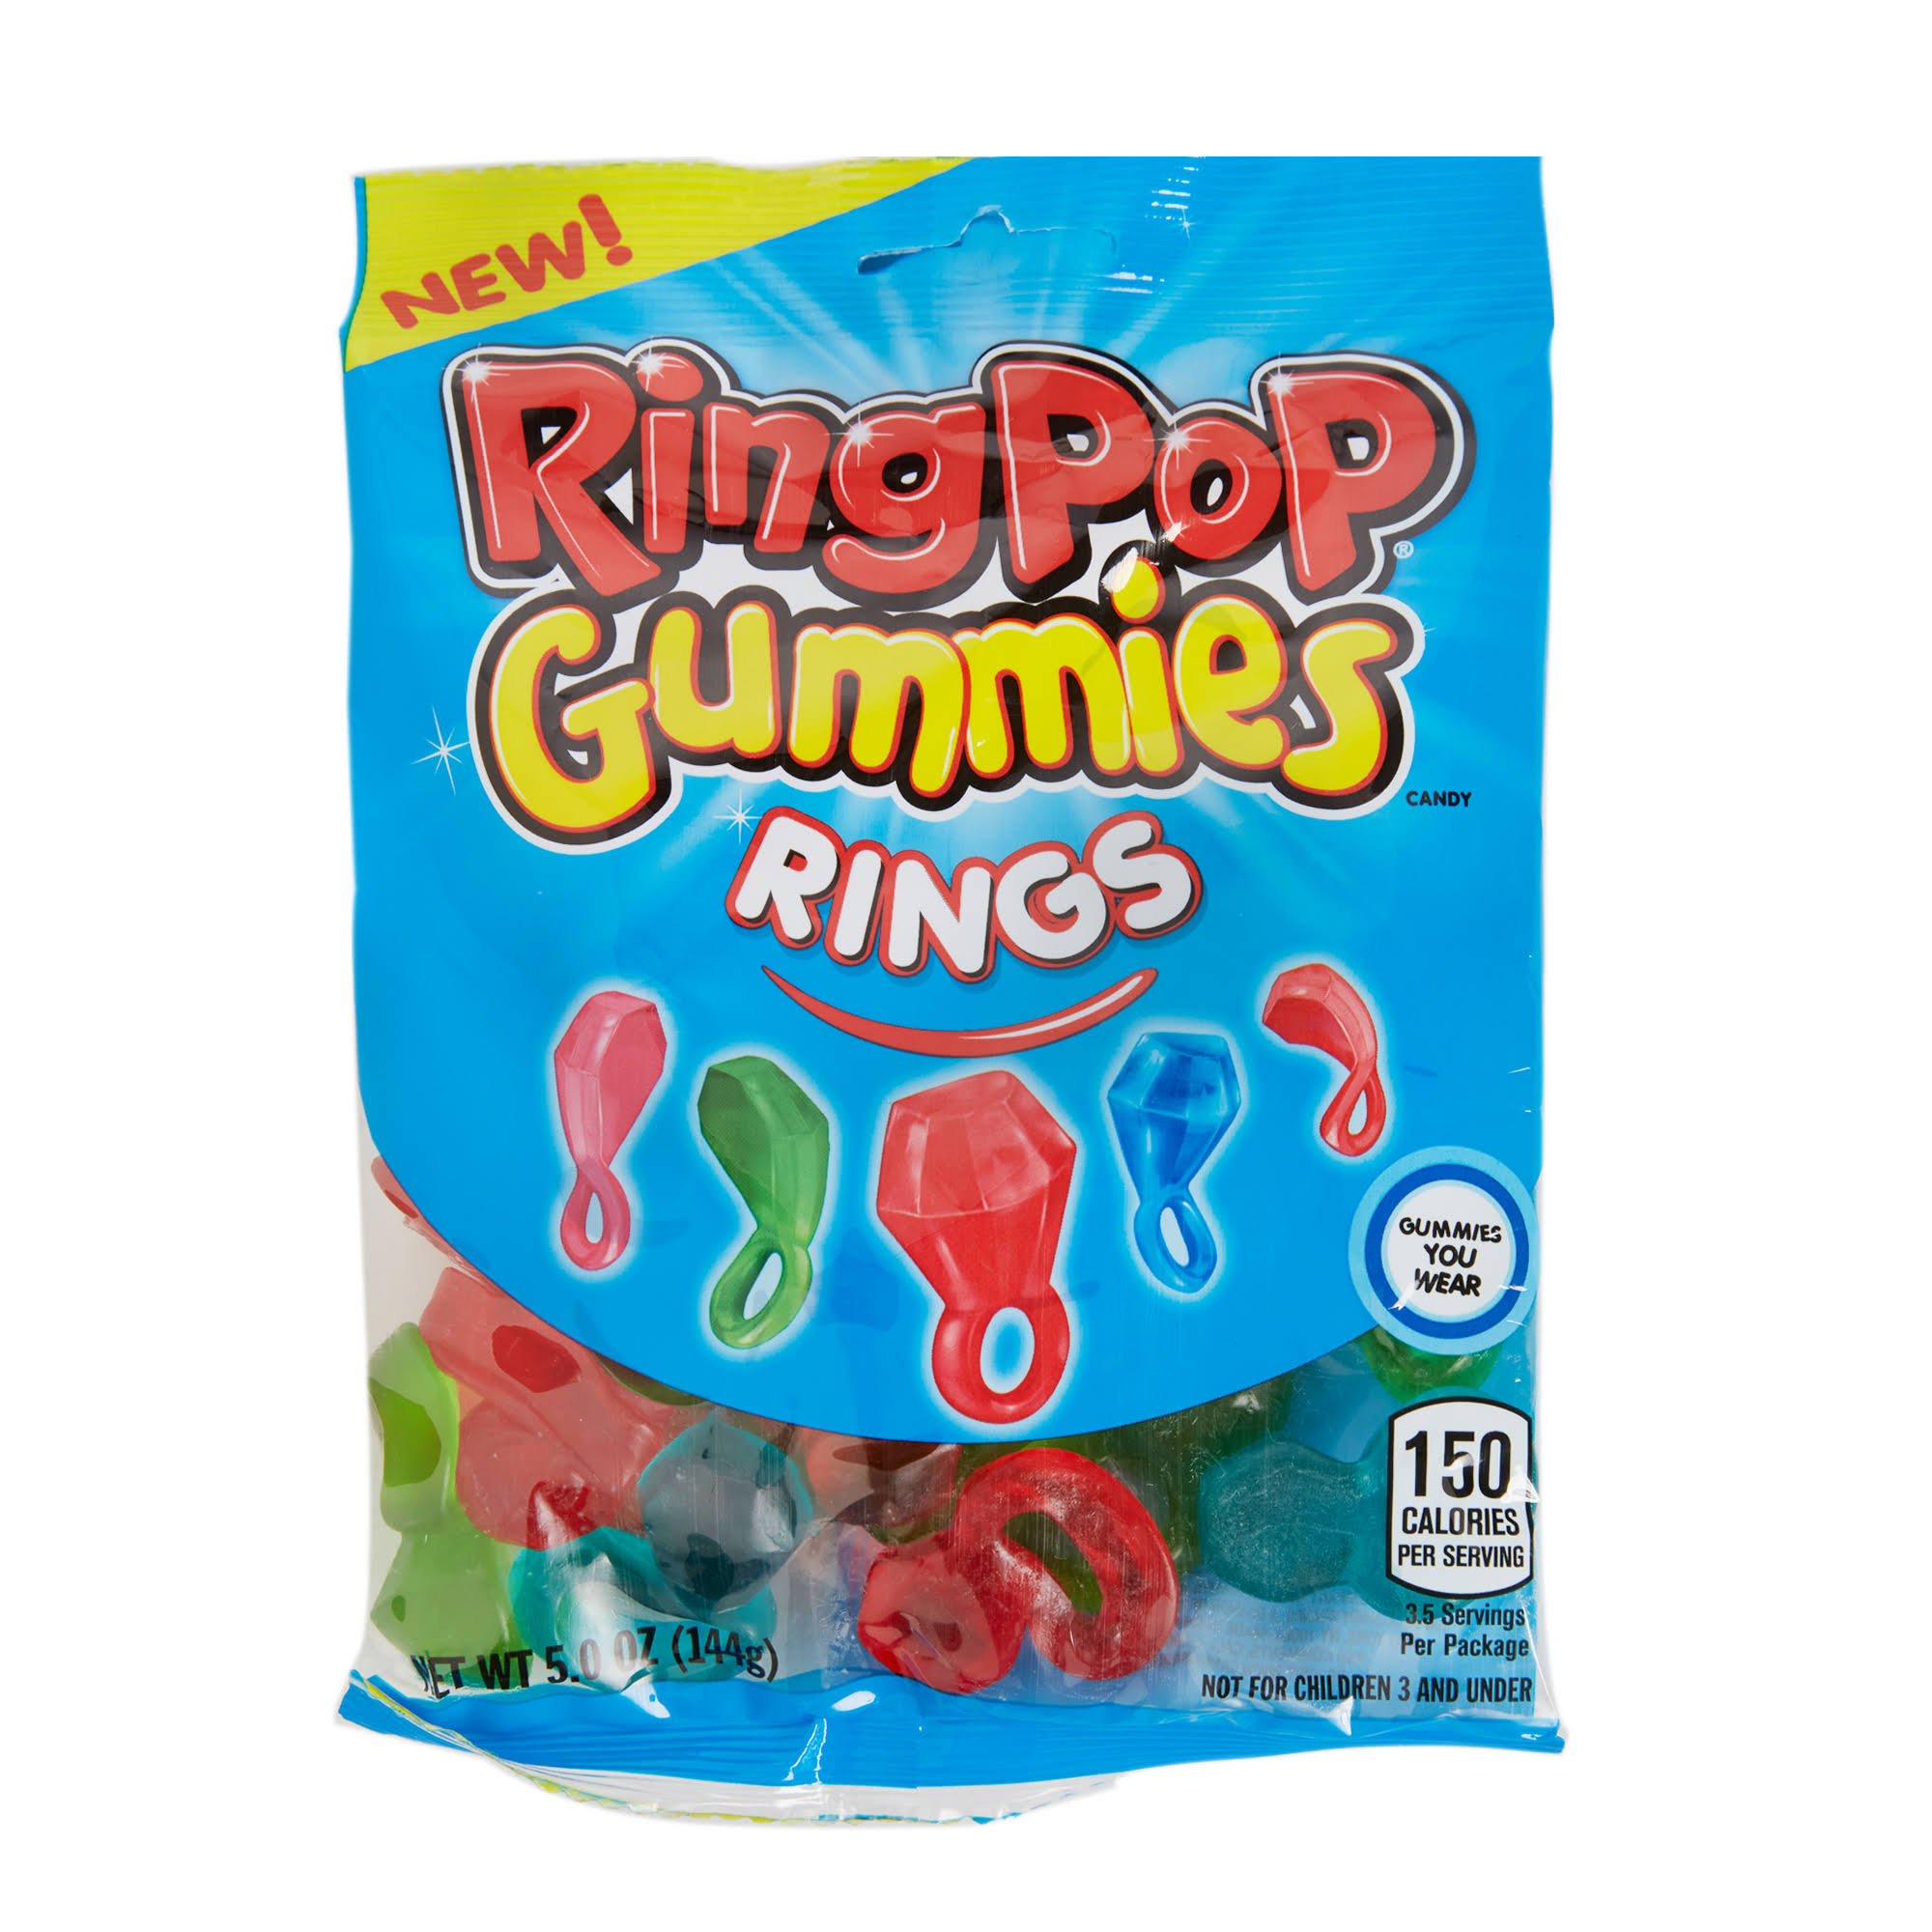 Ring Pop Gummies Rings Candy - 6oz